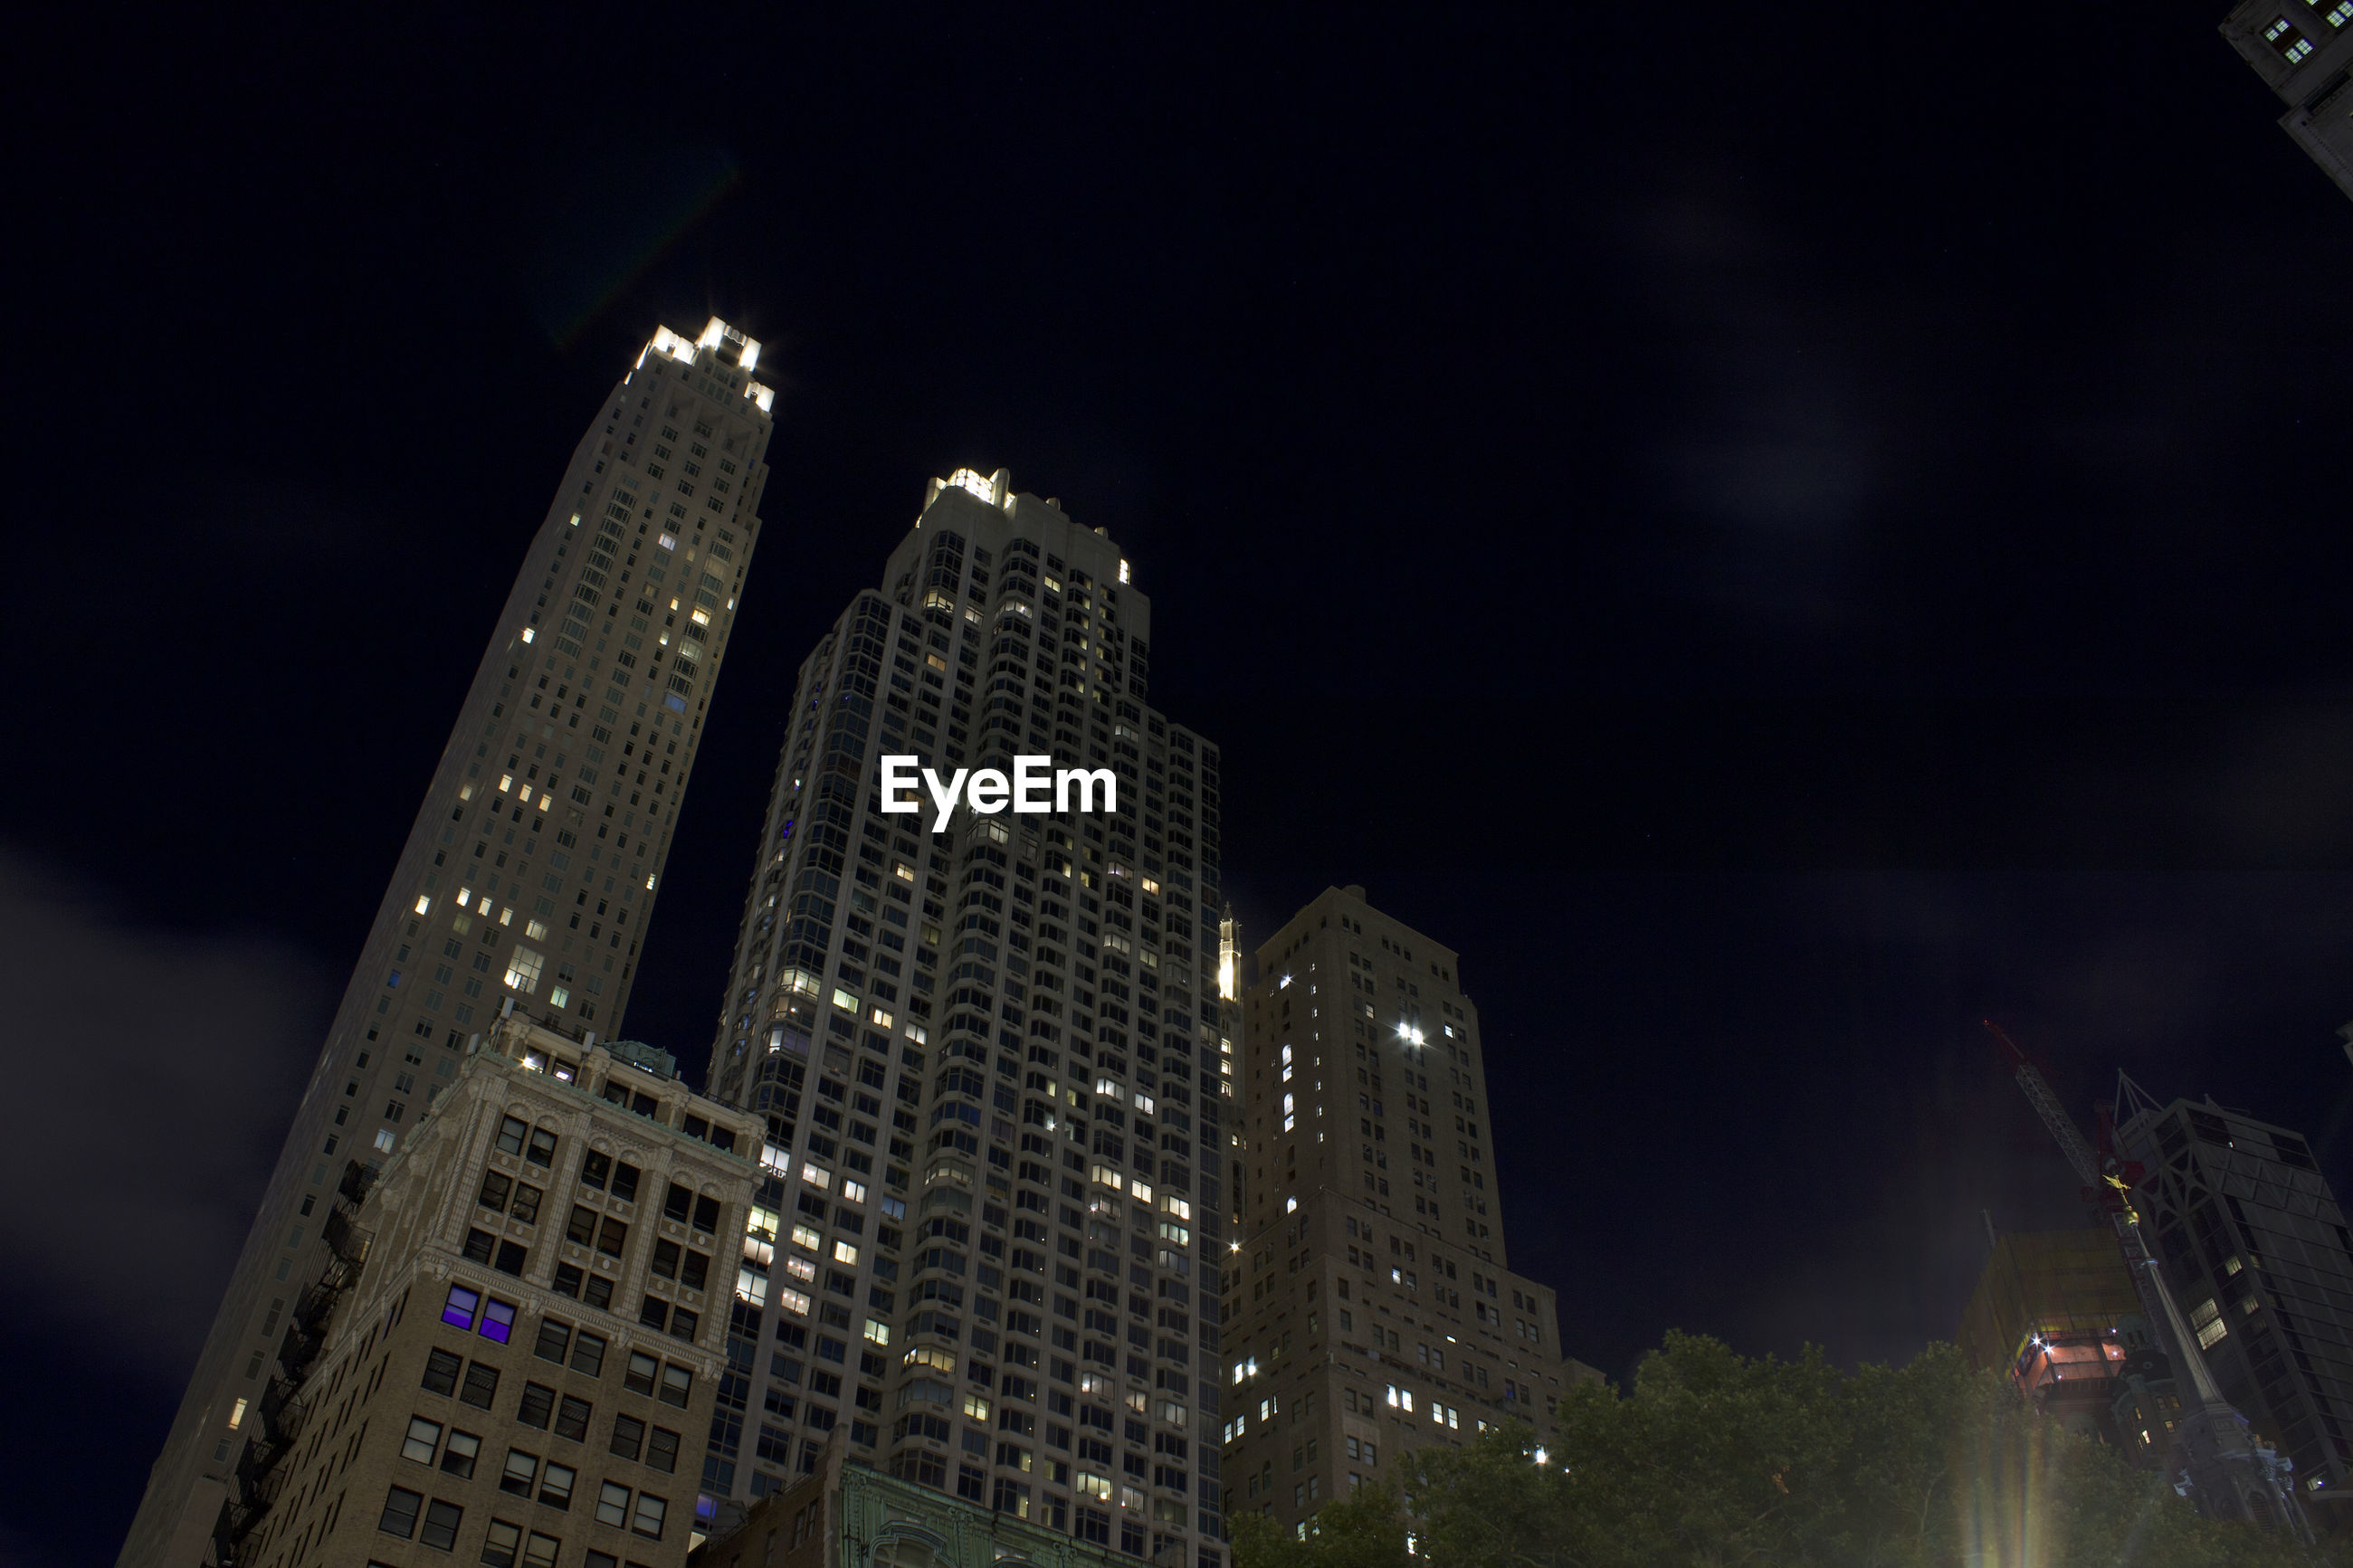 LOW ANGLE VIEW OF ILLUMINATED BUILDINGS AGAINST SKY